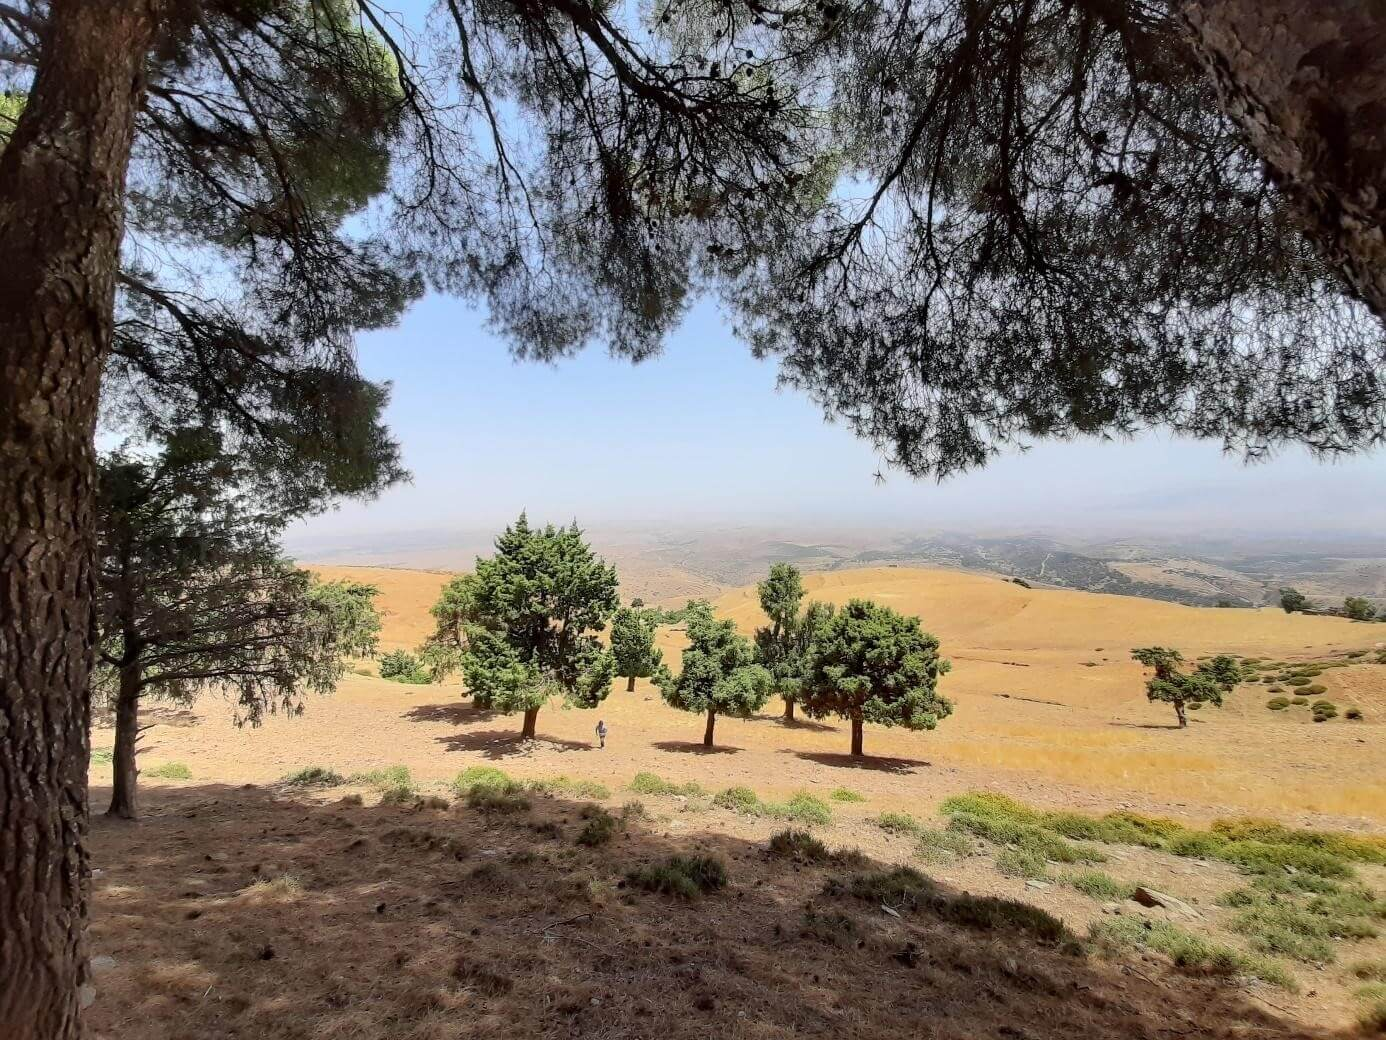 MONITORING TREES IN AMIZMIZ: ANOTHER WAY TO DISCOVER MOROCCAN NATURE AND HISTORY